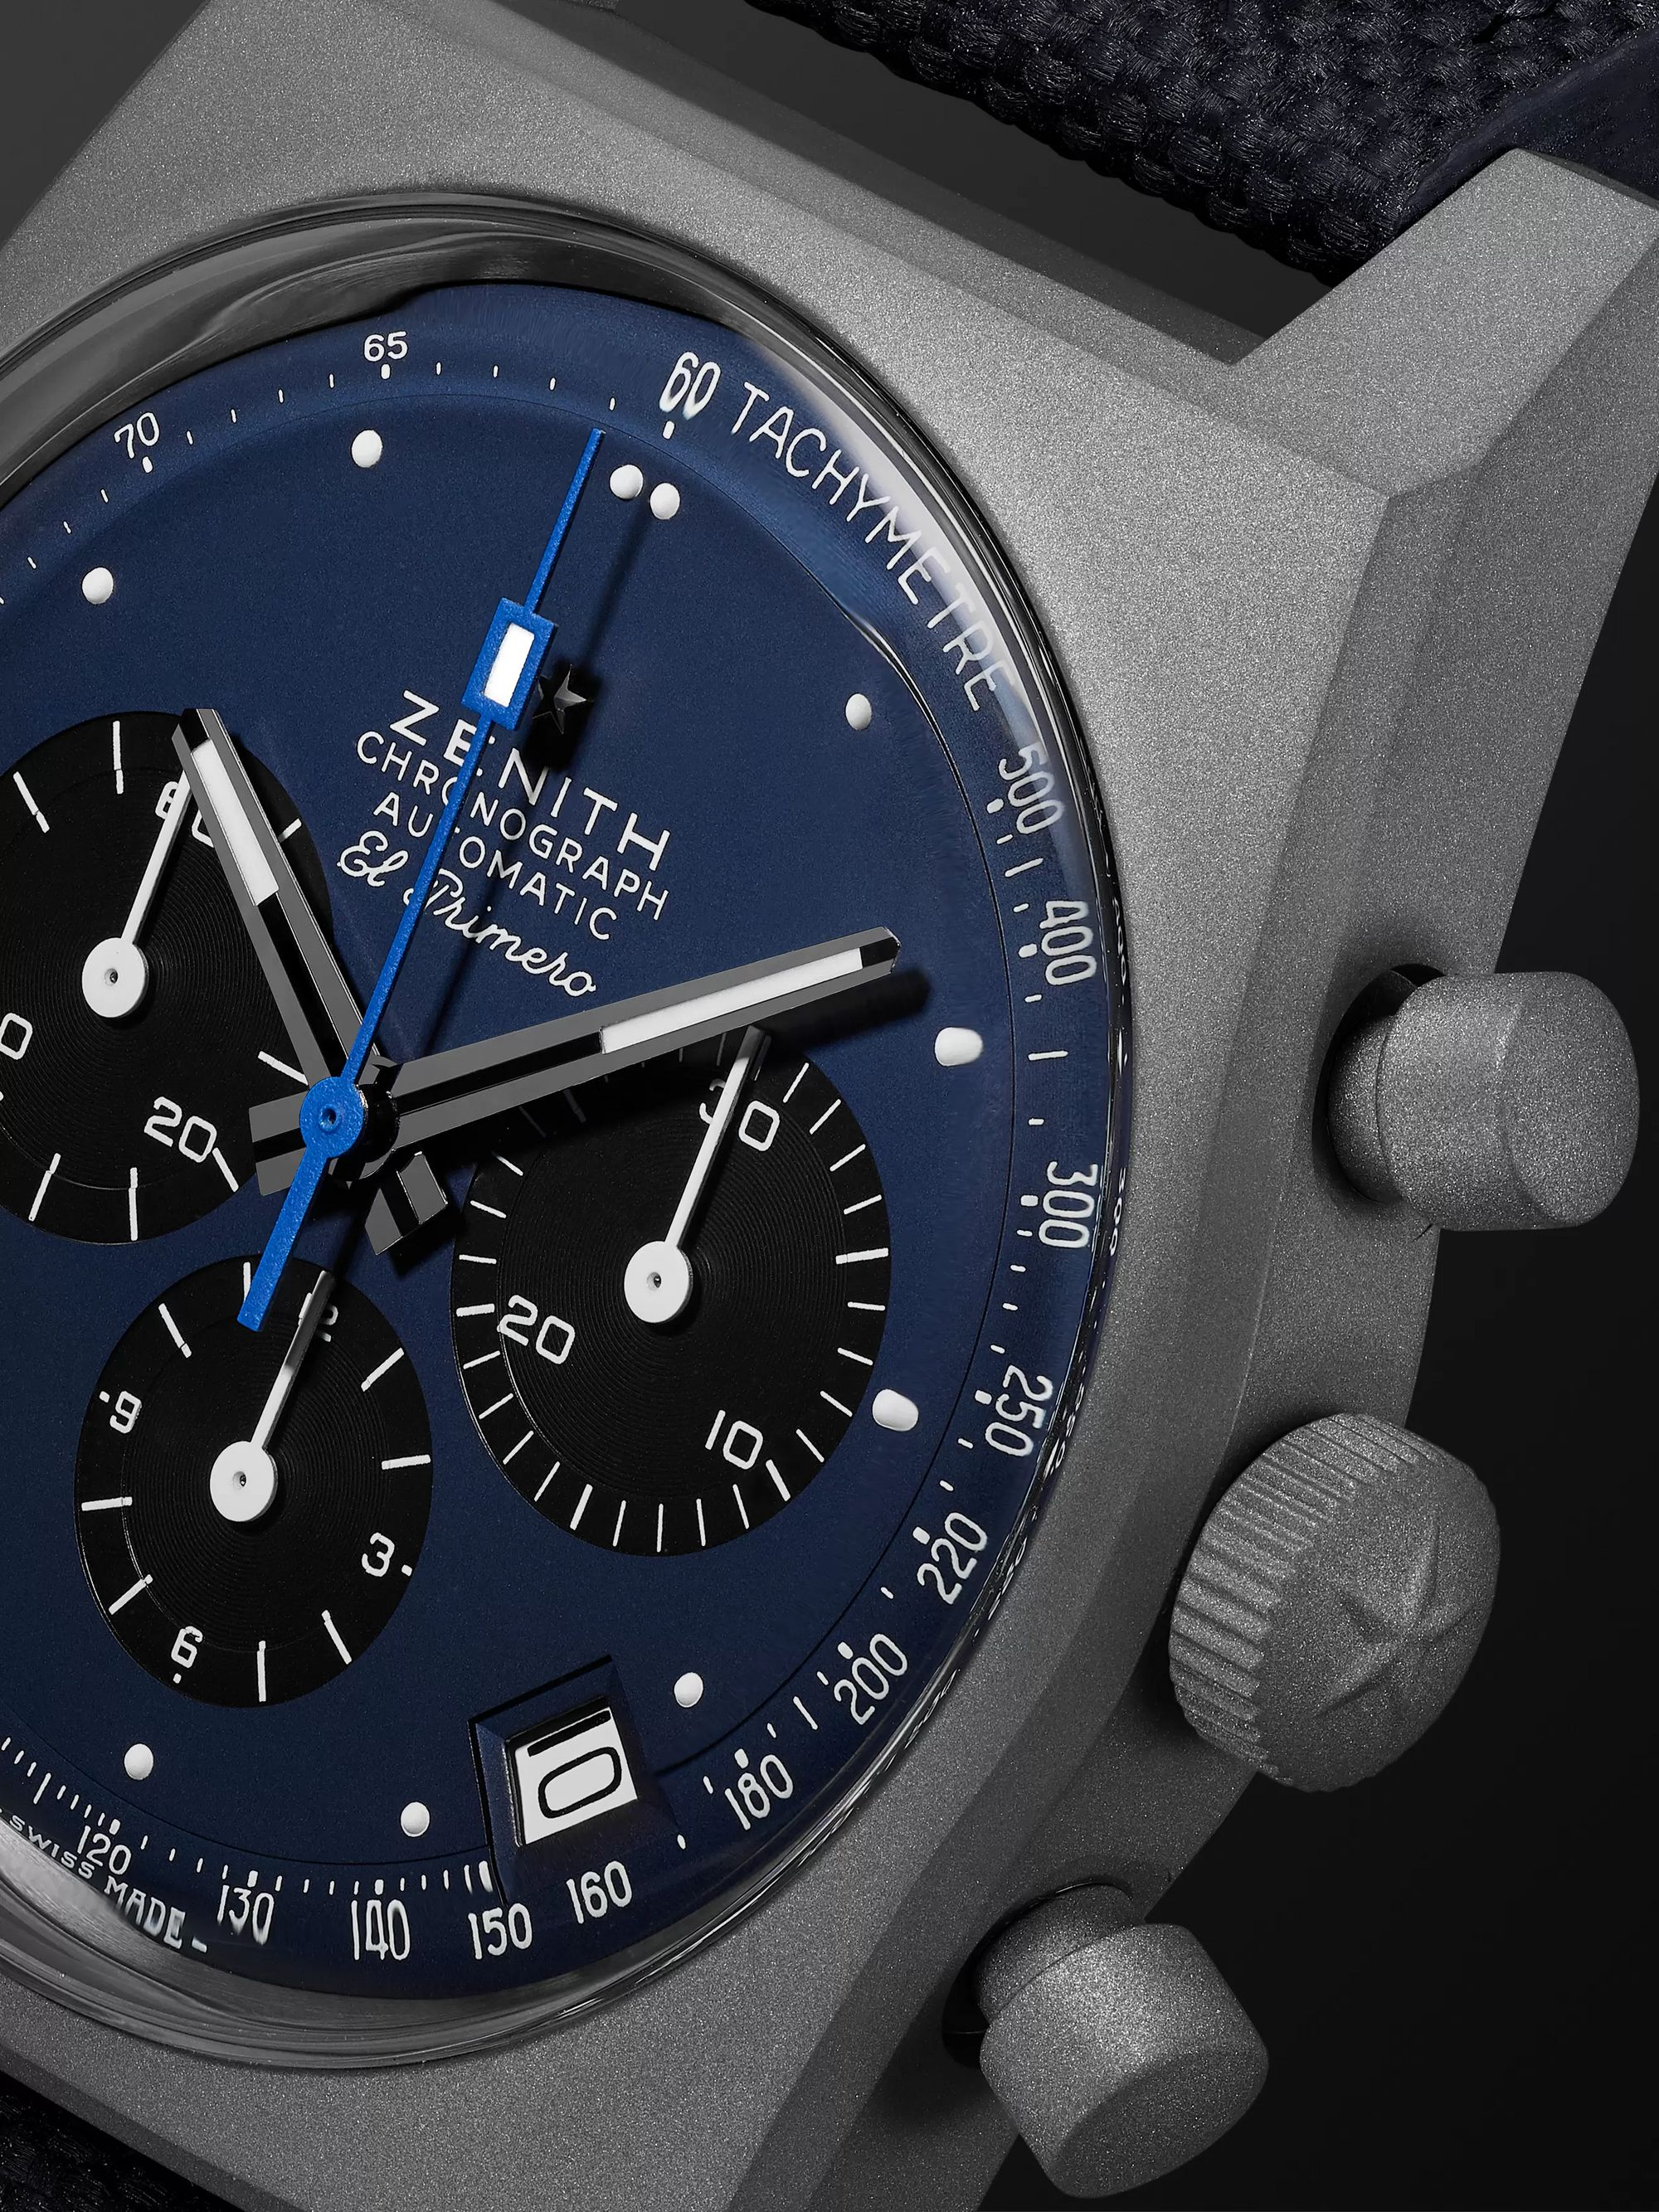 Zenith El Primero Revival A384 'Edge of Space' Limited Edition Automatic Chronograph 37mm Titanium and Rubber Watch, Ref. No.